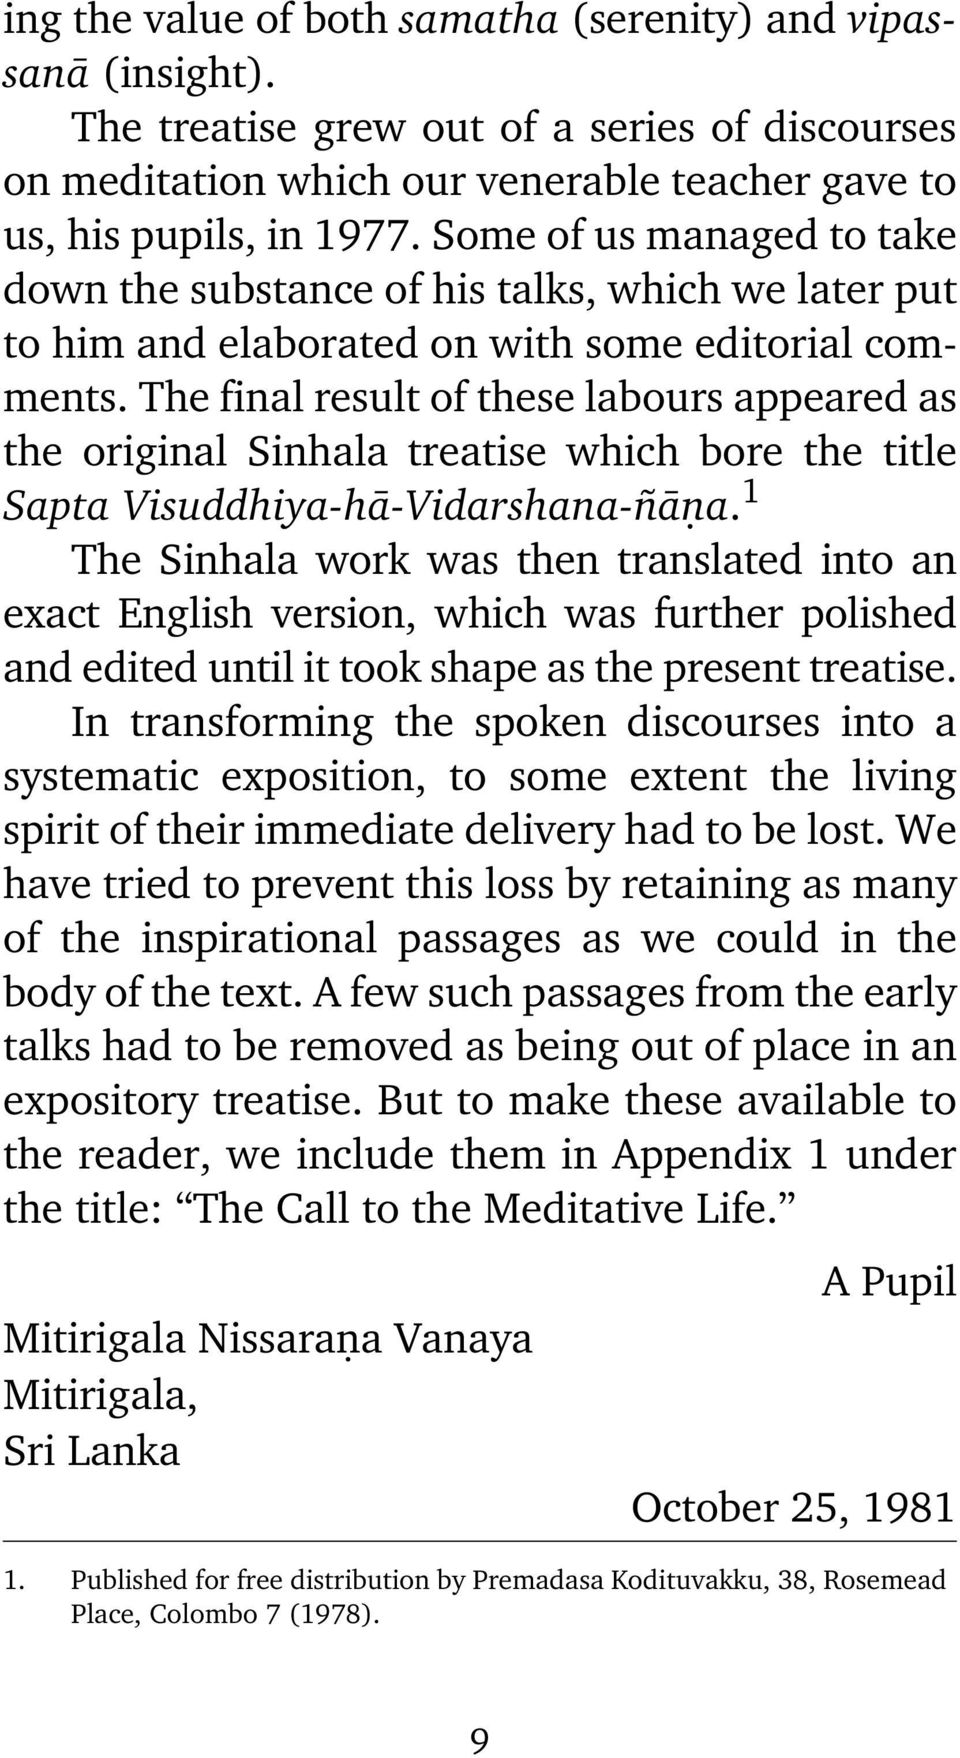 The final result of these labours appeared as the original Sinhala treatise which bore the title Sapta Visuddhiya-hà-Vidarshana- àõa.